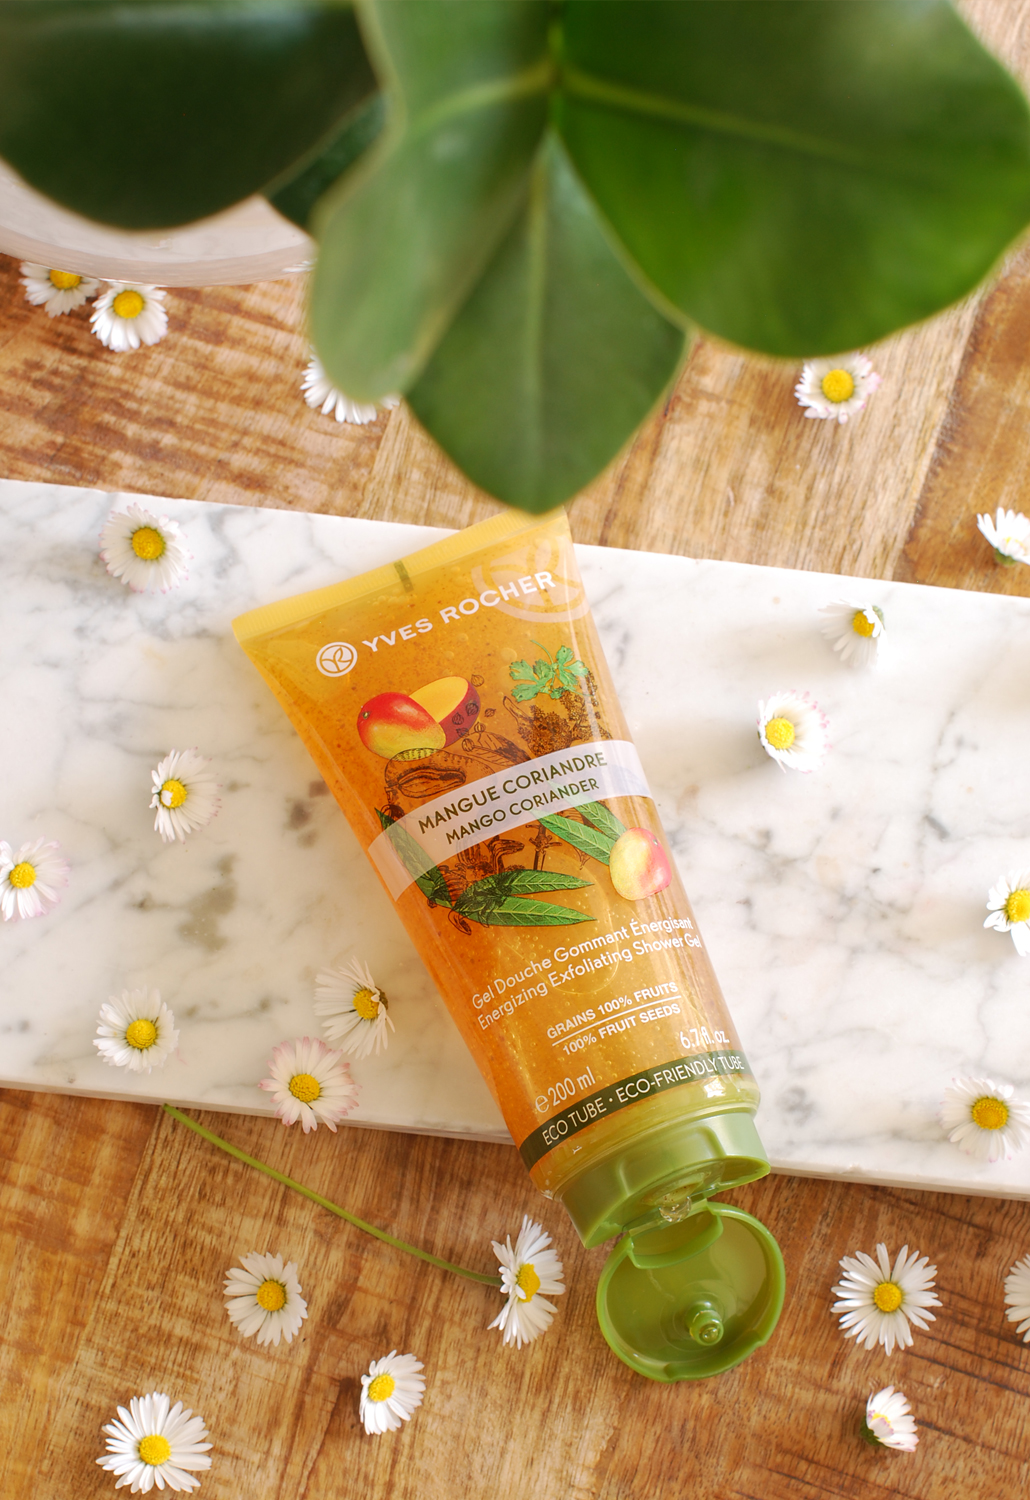 Les Plaisirs nature Yves Rocher review mango lifetsyle by linda energie